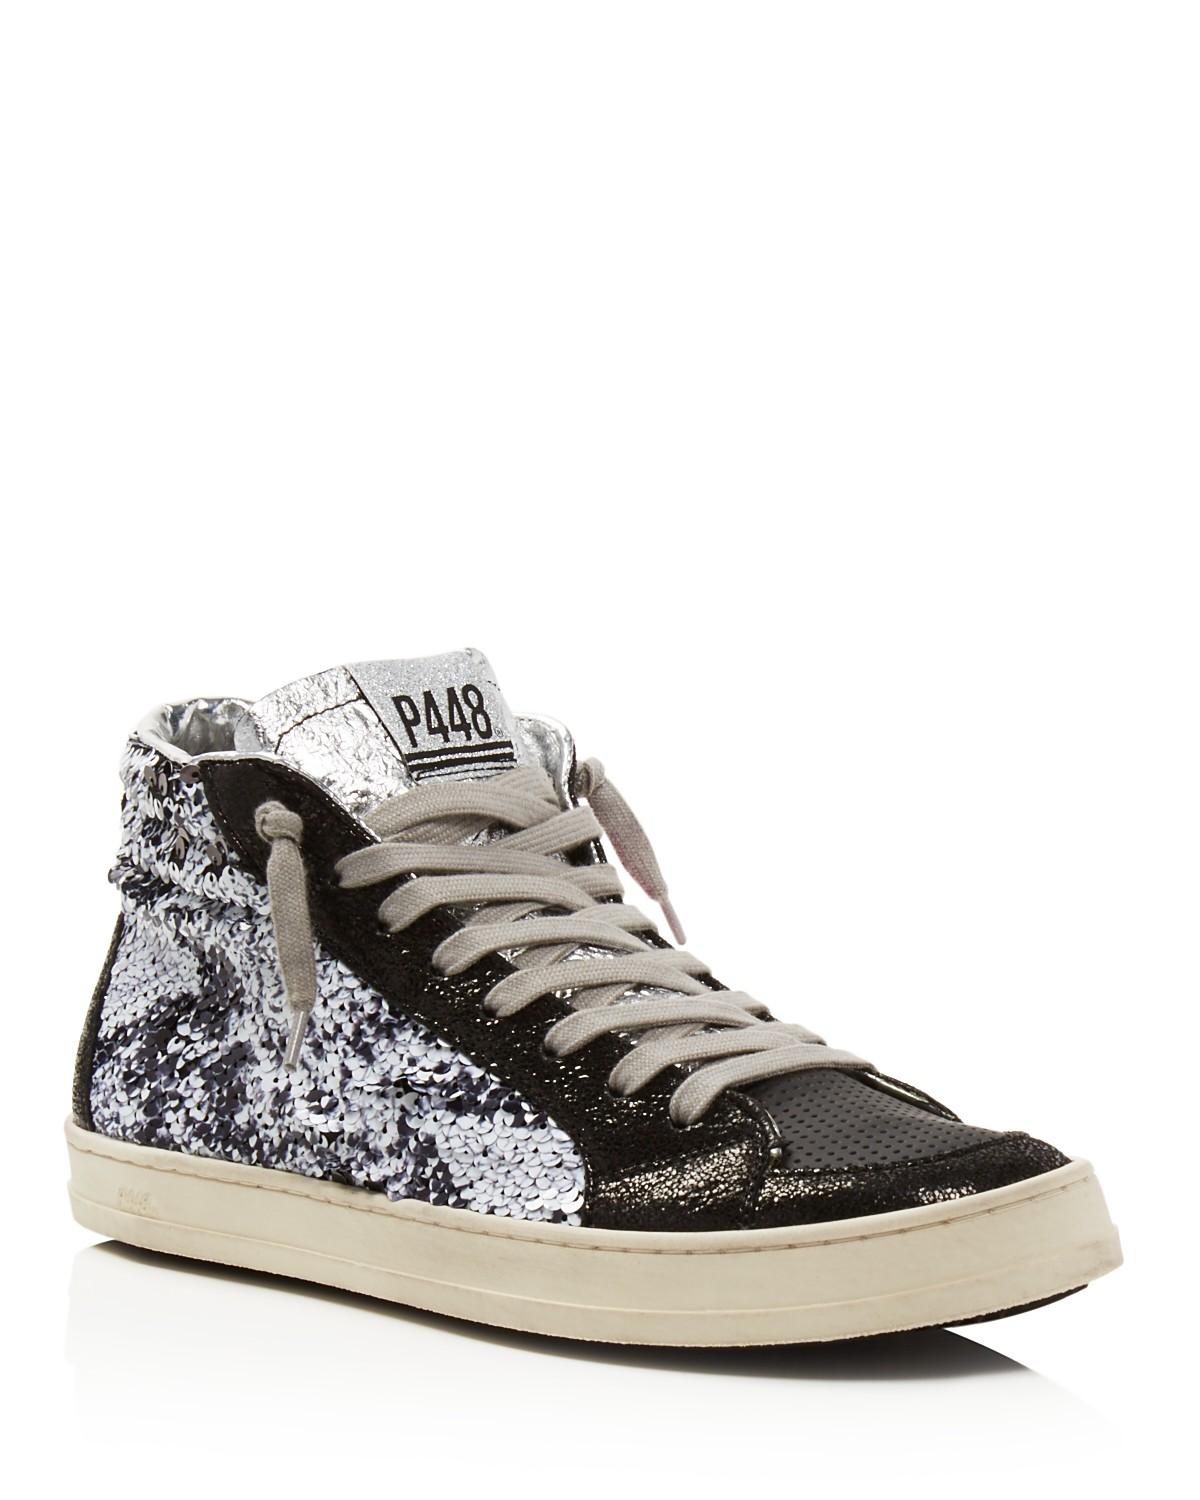 P448 Women's Skate High Top Sneakers Explore Outlet Shop Offer 6PDxxRT